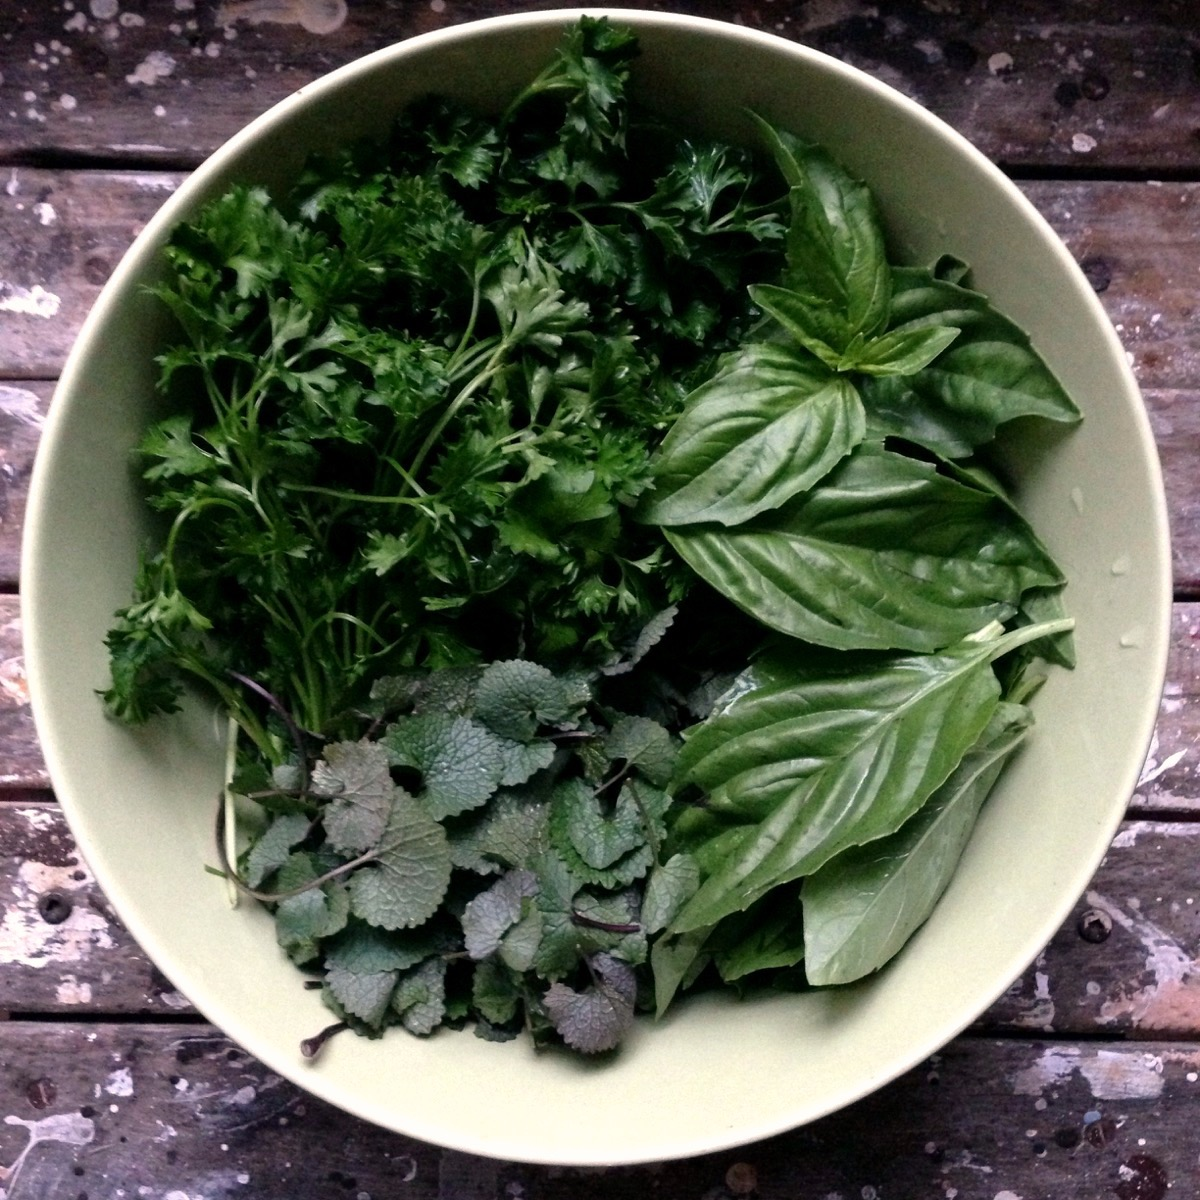 I used garlic mustard and added basil and parsley, but add any herbs you love